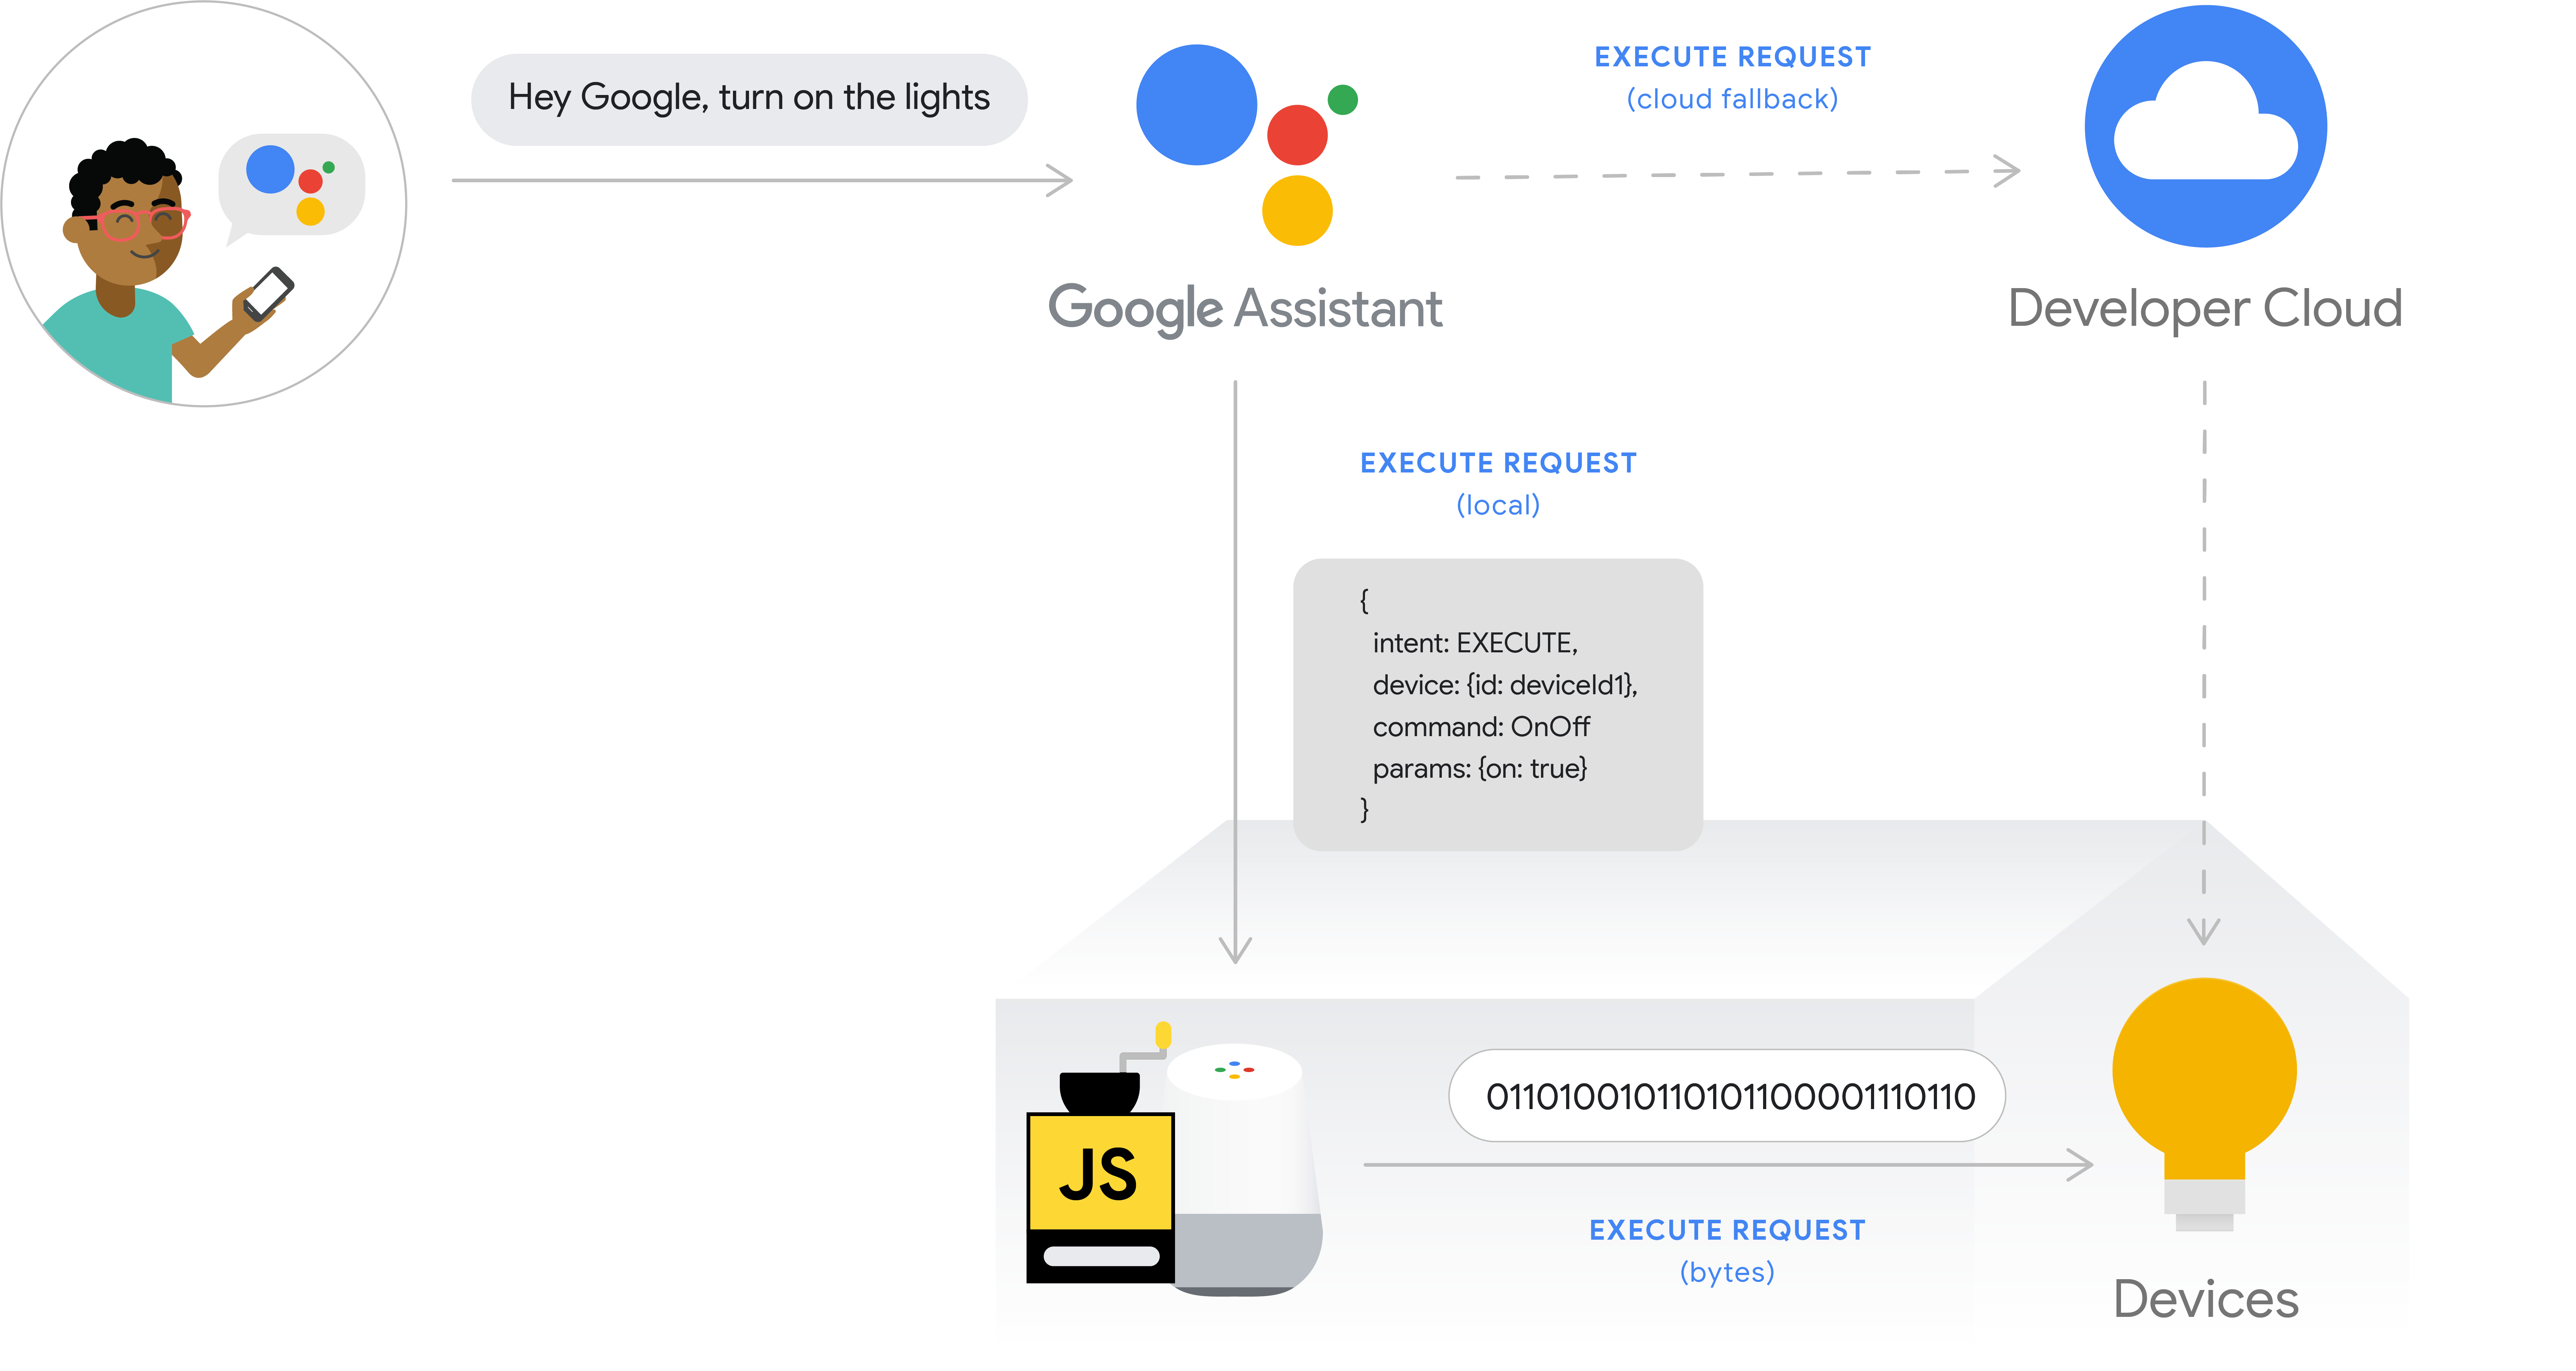 This figure shows the execution flow for local execution. The             execution path captures a user's intent from a phone with the             Google Assistant, then the user intent is processed by             the Google Cloud, then it is executed locally on the Google Home             device and the command is issued directly to the device hub or             directly to the device. The developer cloud is available as a             cloud fallback.